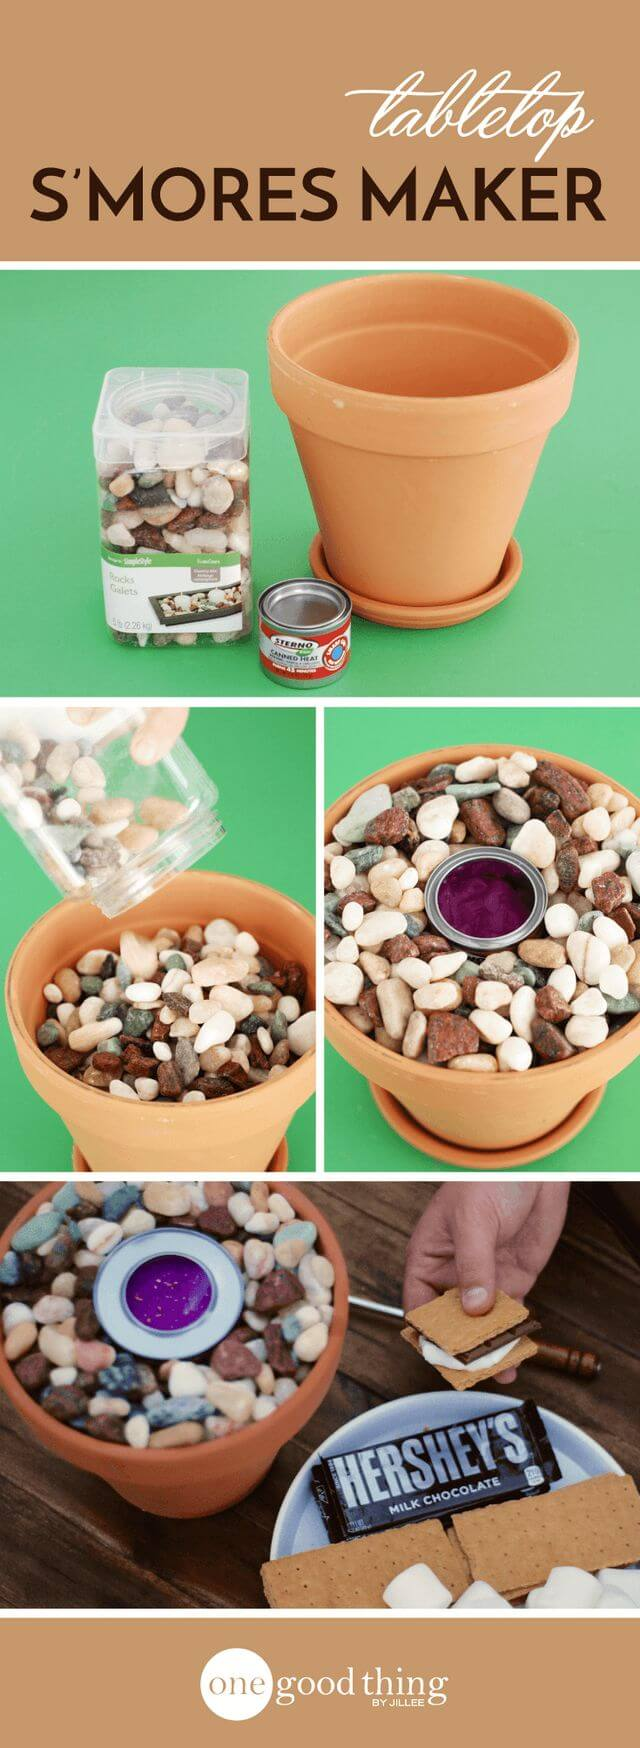 Make a Tiny Fire Pit for S'mores